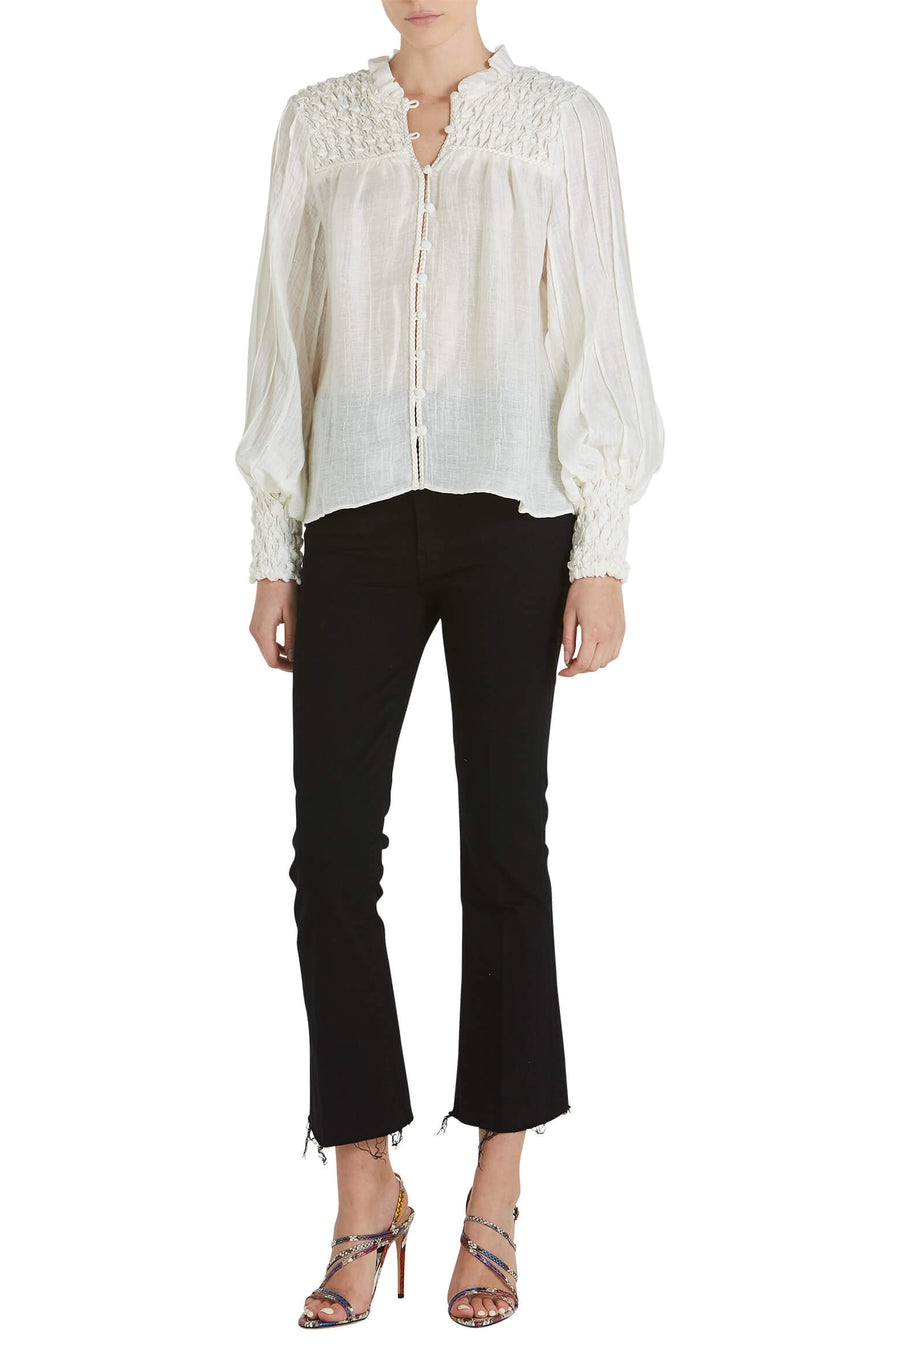 Alexis Minelli Top from The New Trend